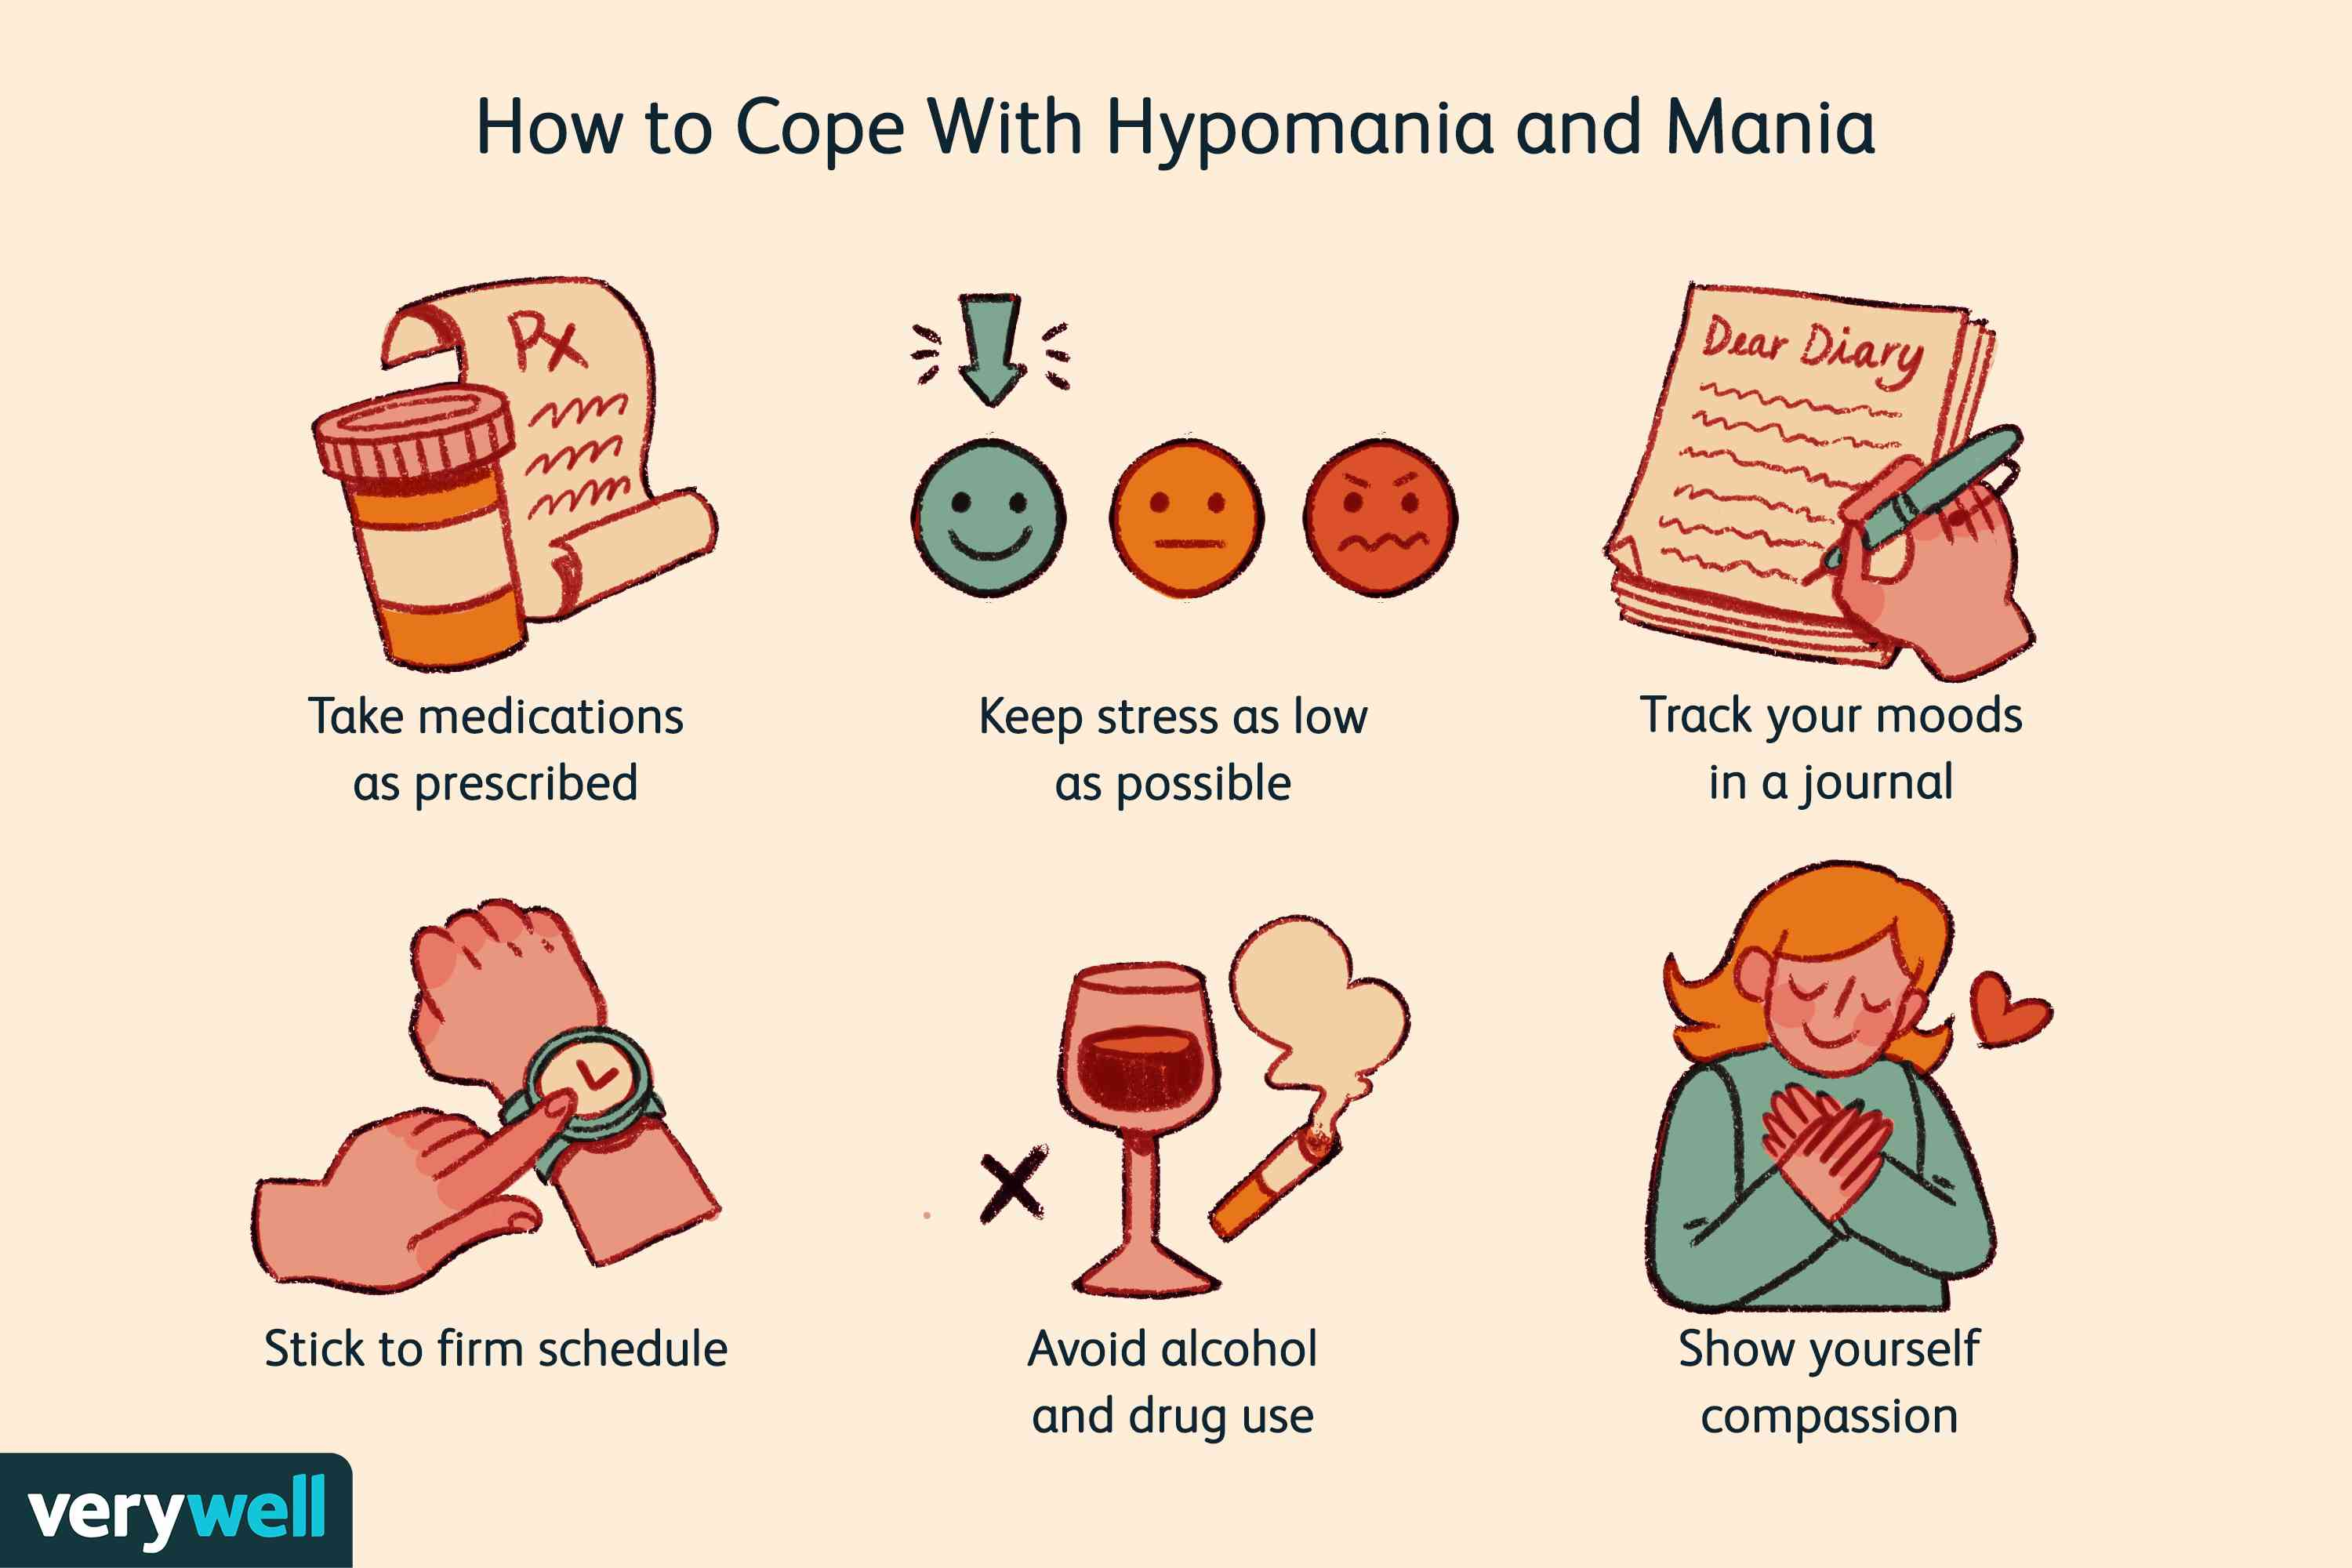 How to Cope With Hypomania and Mania